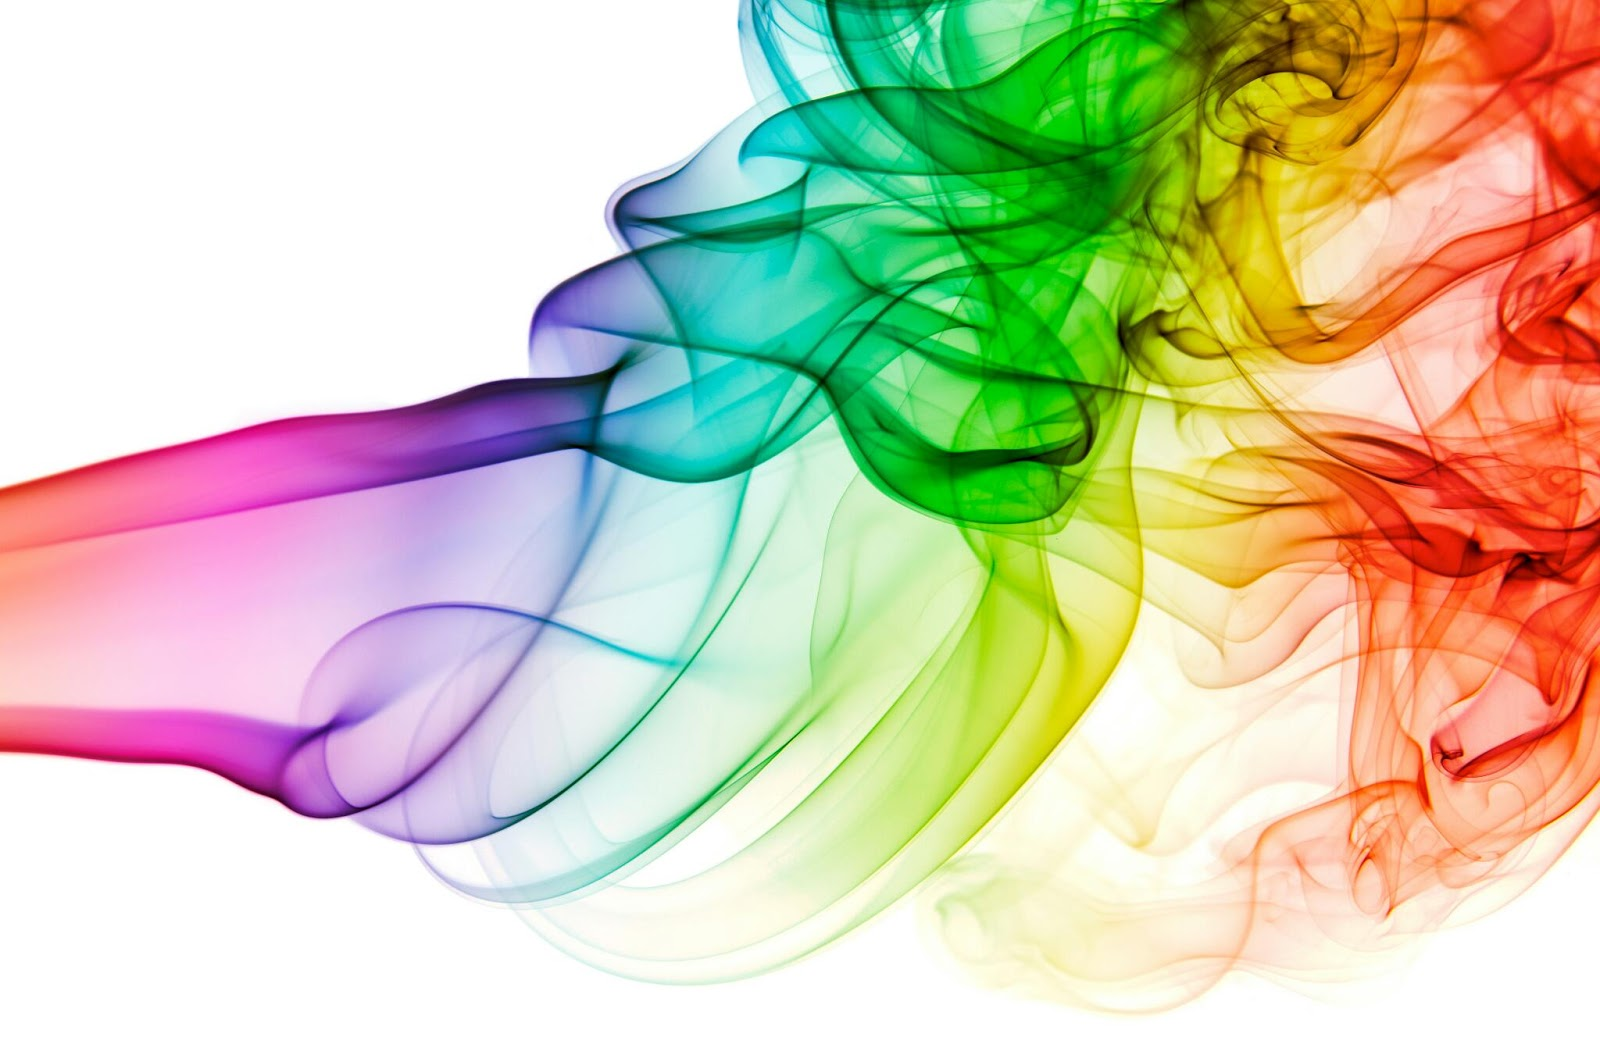 Rainbow smoke abstract backgrounds